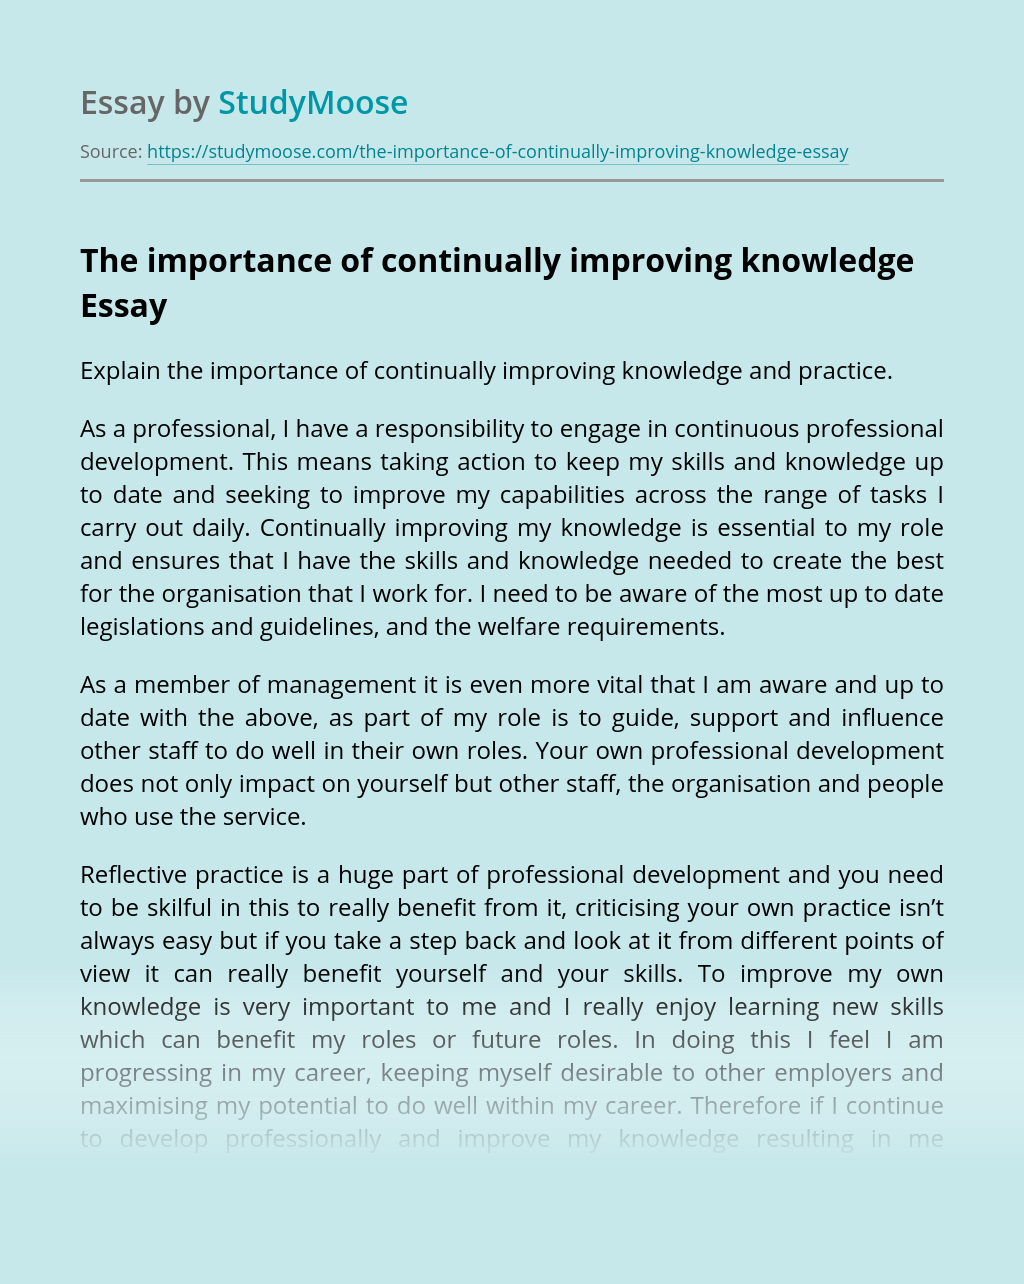 The importance of continually improving knowledge